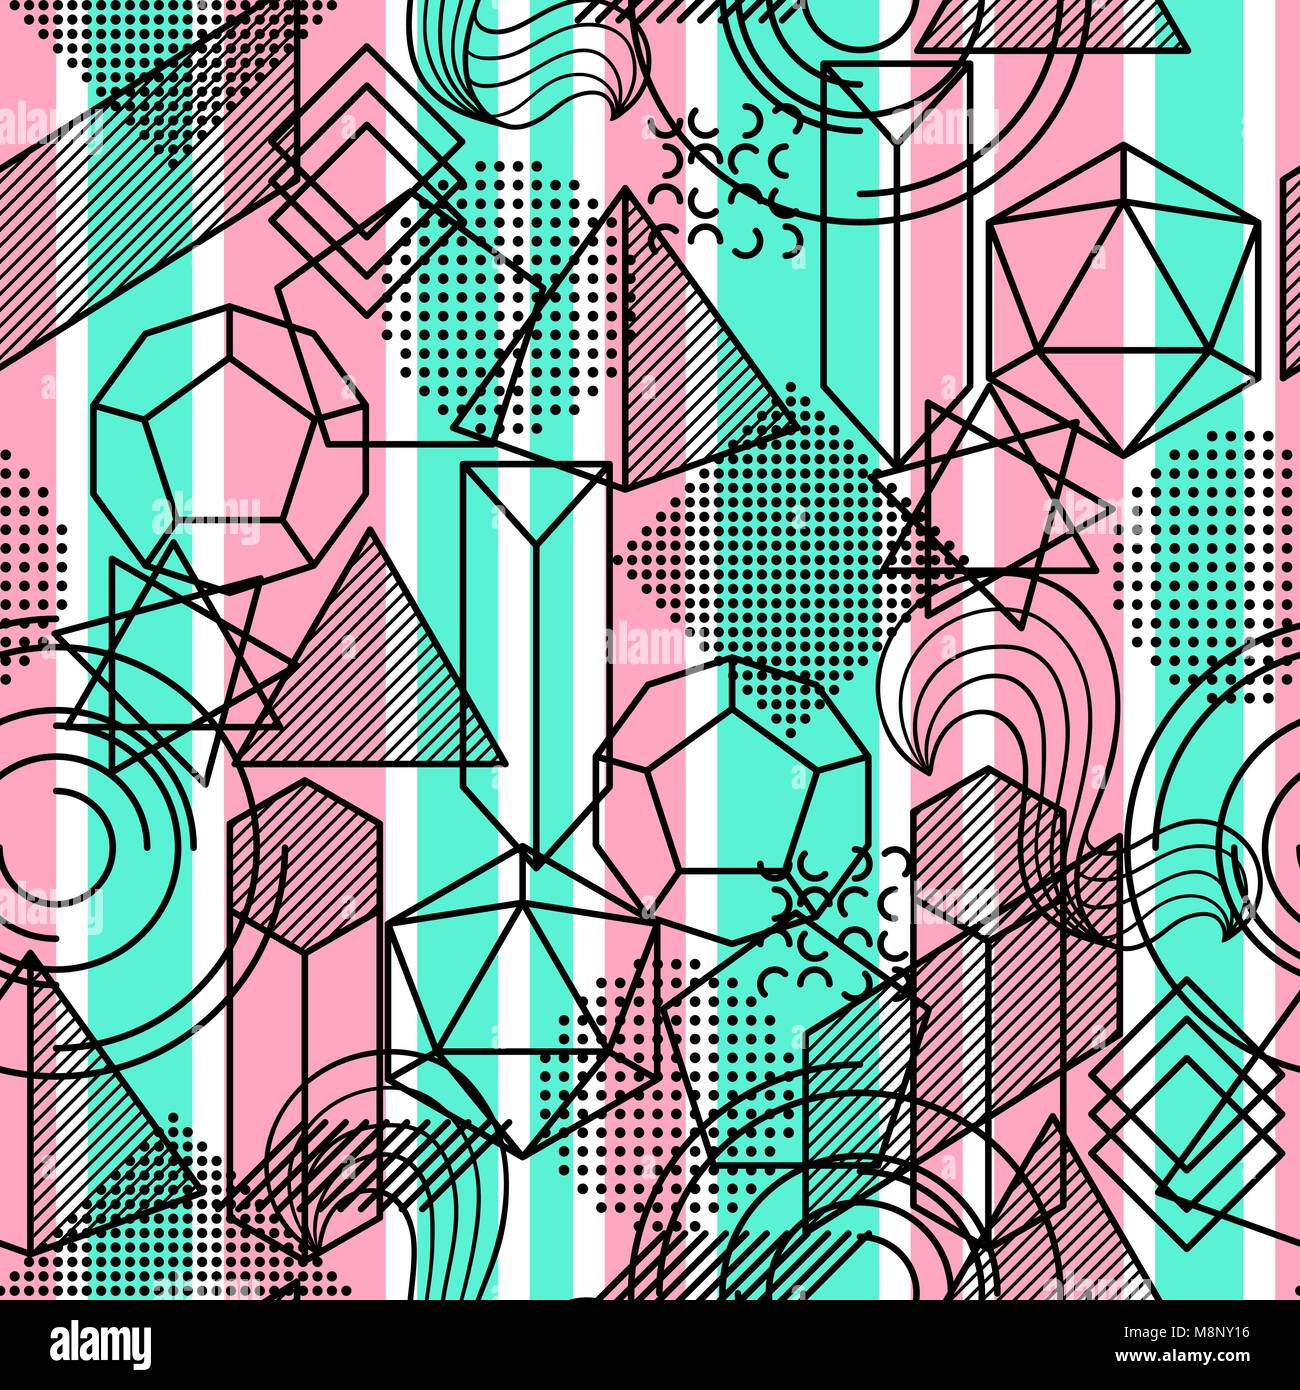 seamless pattern with abstract geometric shapes. line art background